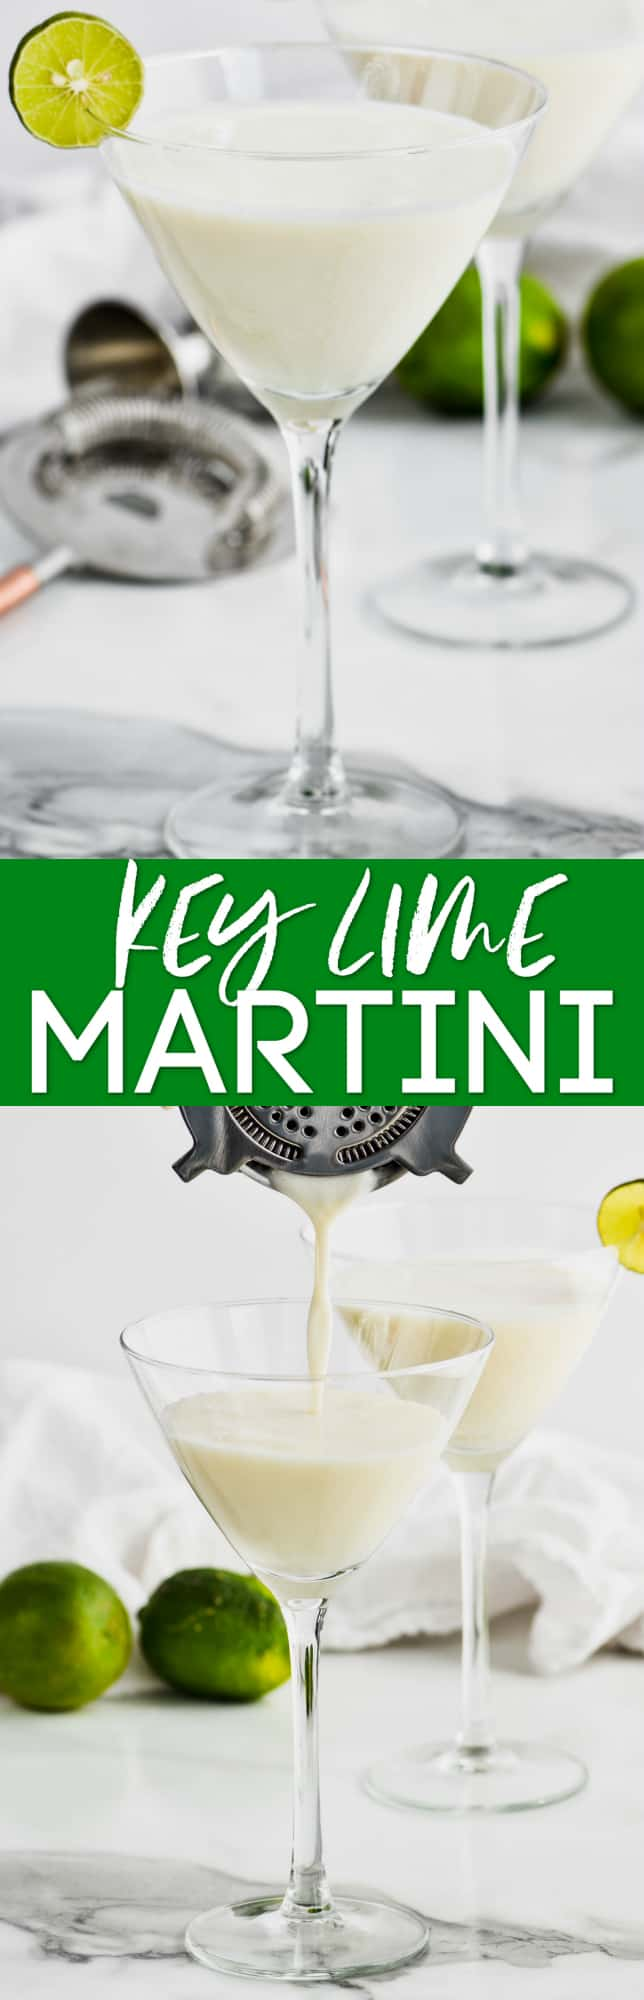 collage of photos of key lime martini recipe